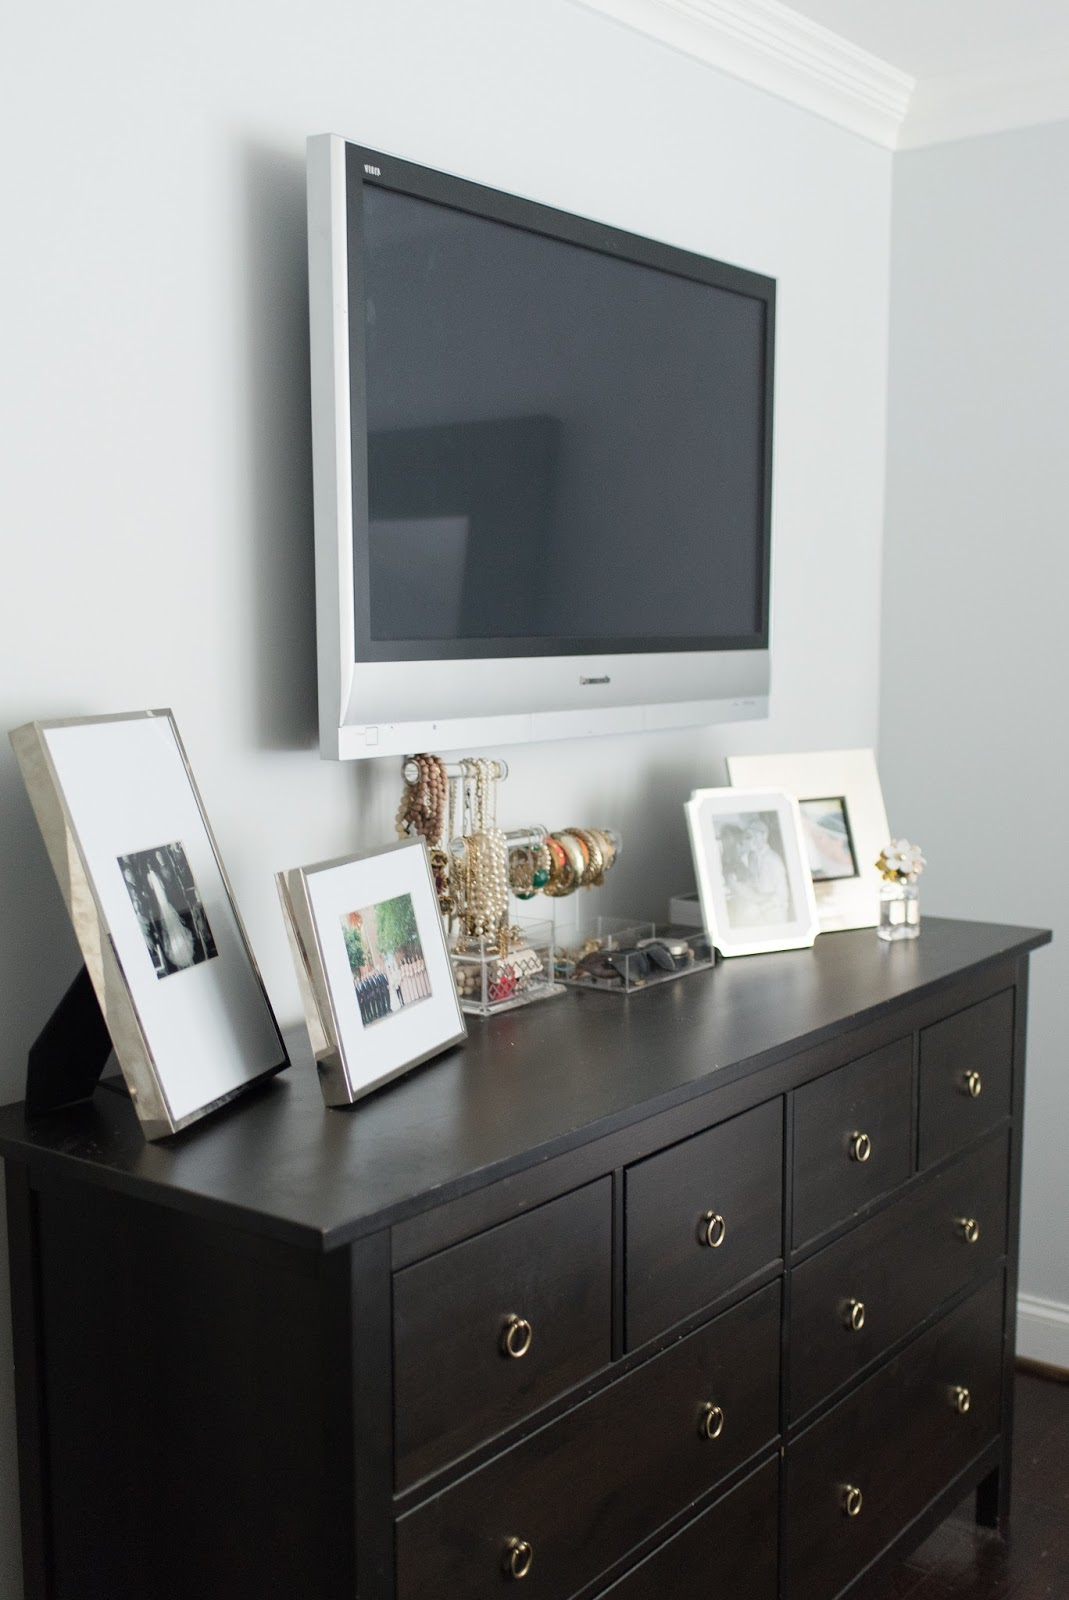 Weu0027ve Been Rocking The IKEA Hemnes Collection In Our Master Since We Got  Together.